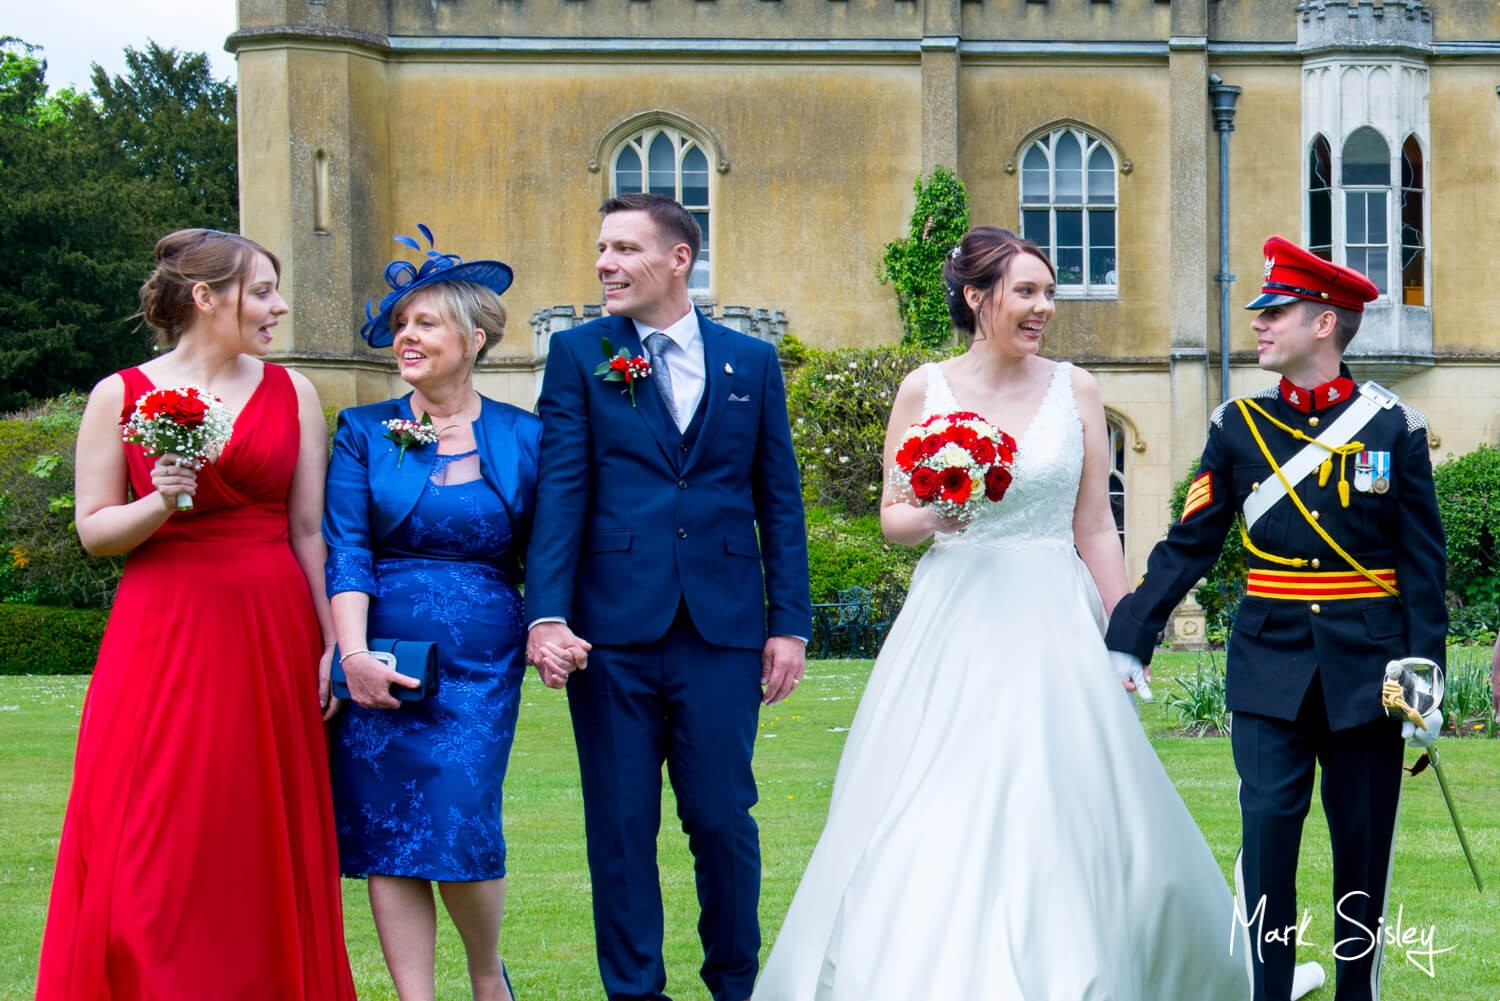 Taking a stroll on the lawns at this Missenden Abbey military wedding